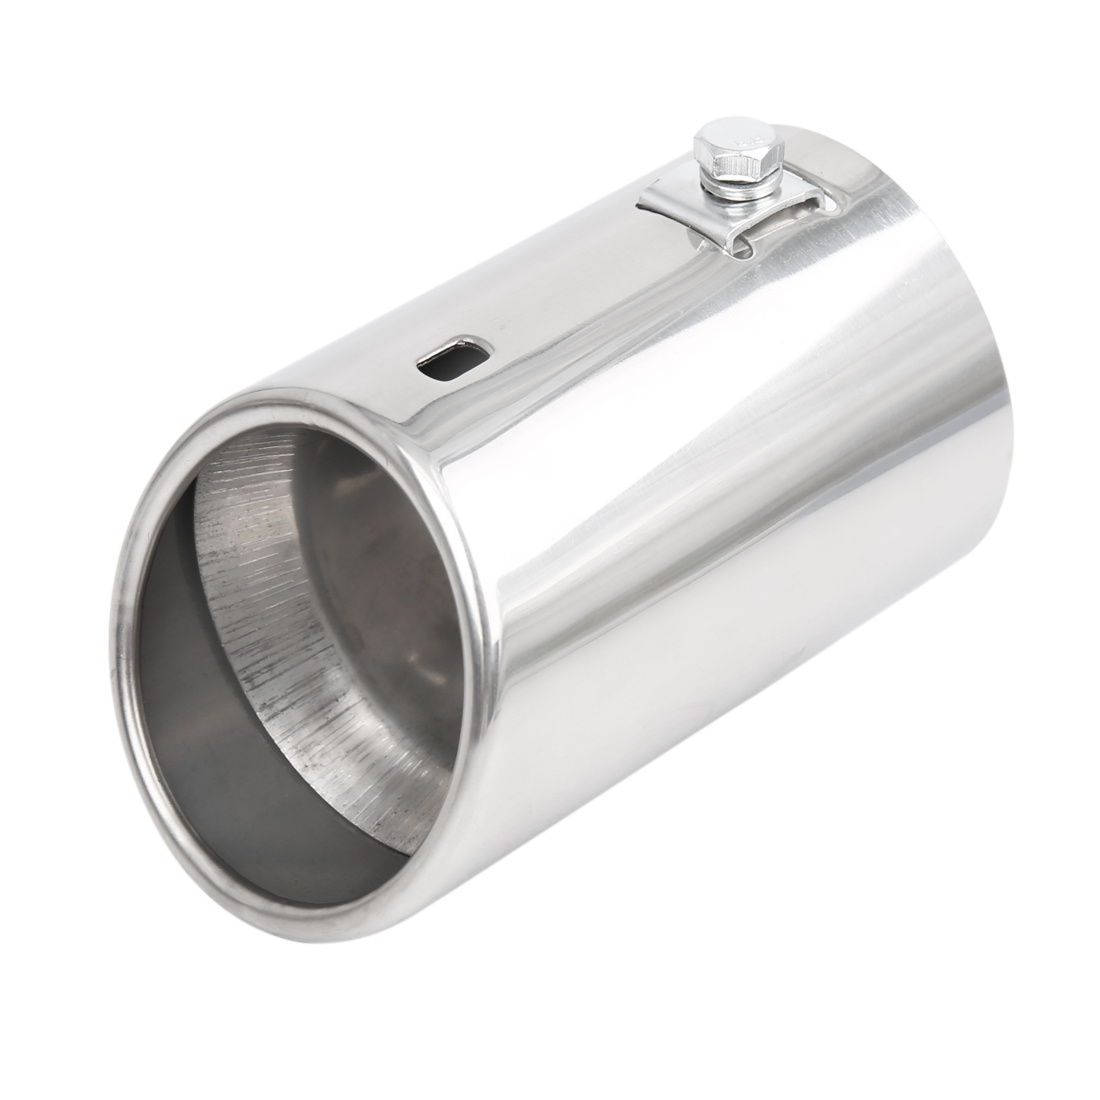 """Universal Car Stainless Steel Chrome Exhaust Rear Tail Muffler Tip Pipe Fit Diameter 1 1/4"""" to 2"""""""